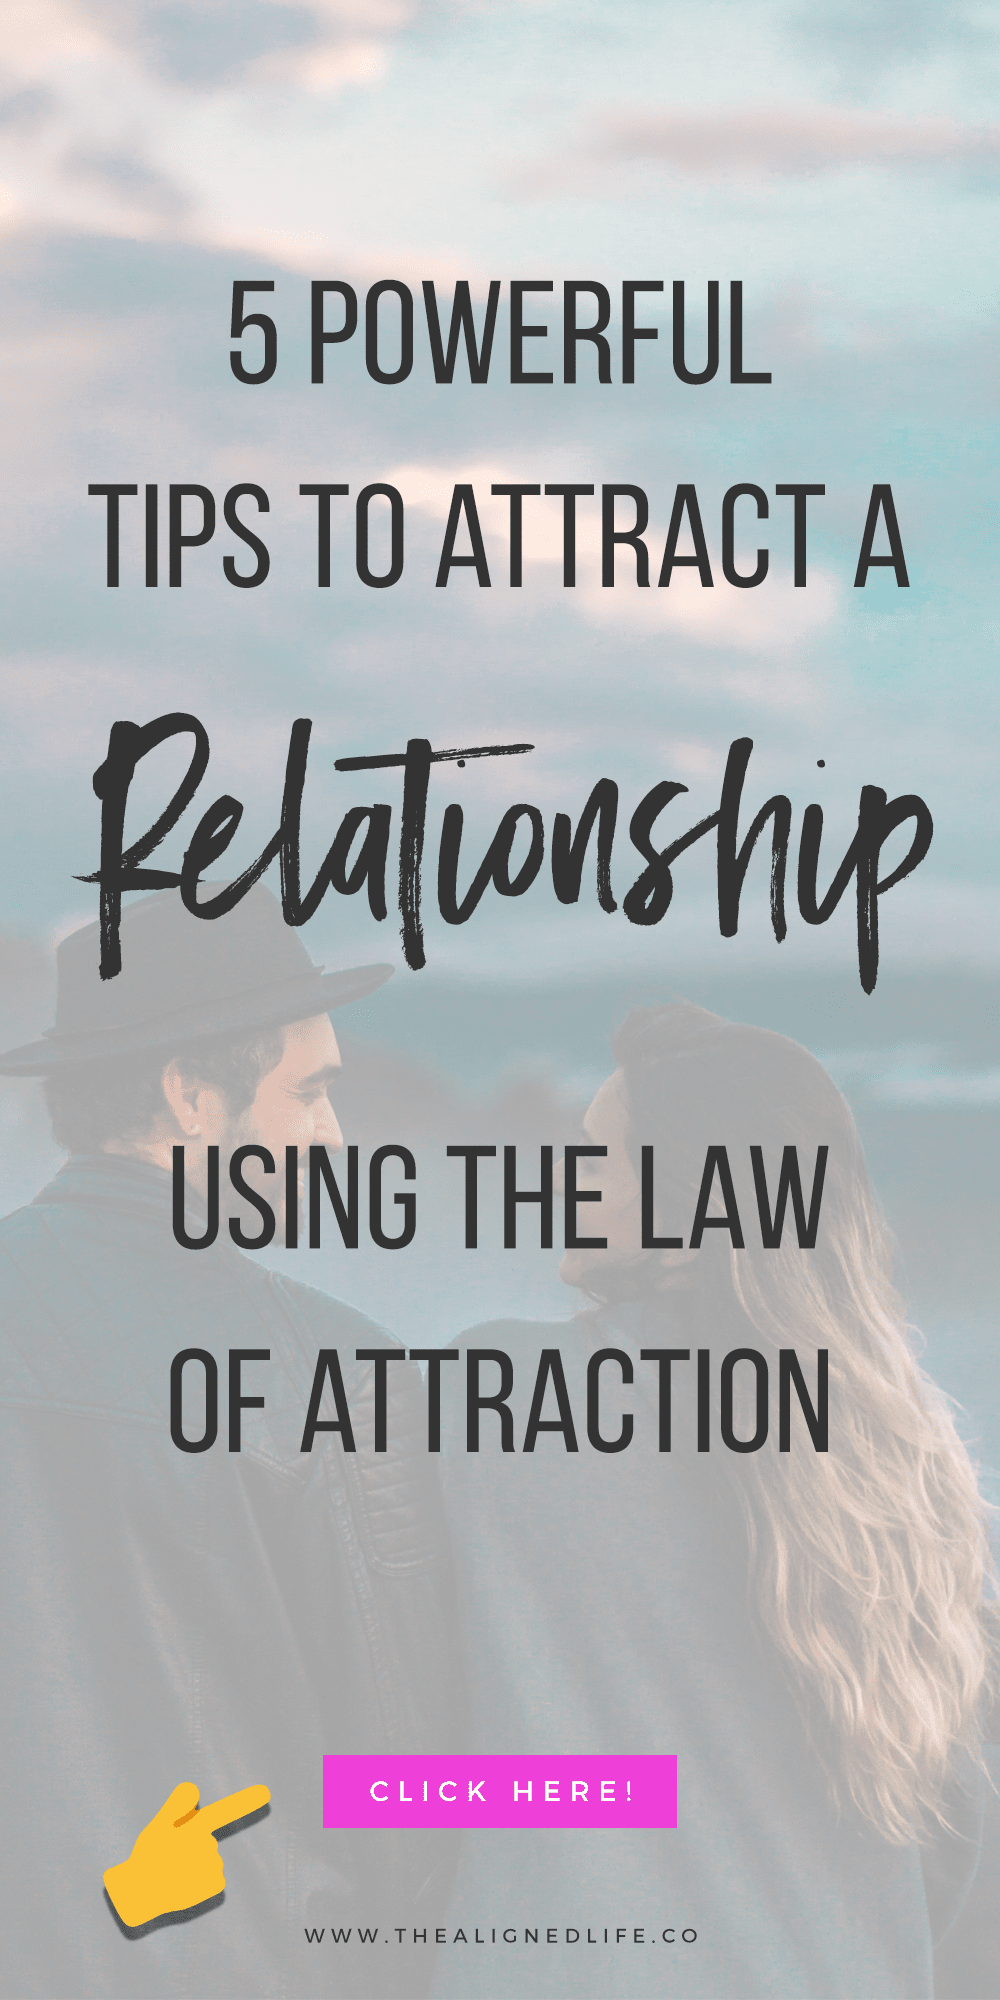 5 Powerful Tips To Attract A Relationship Using The Law Of Attraction